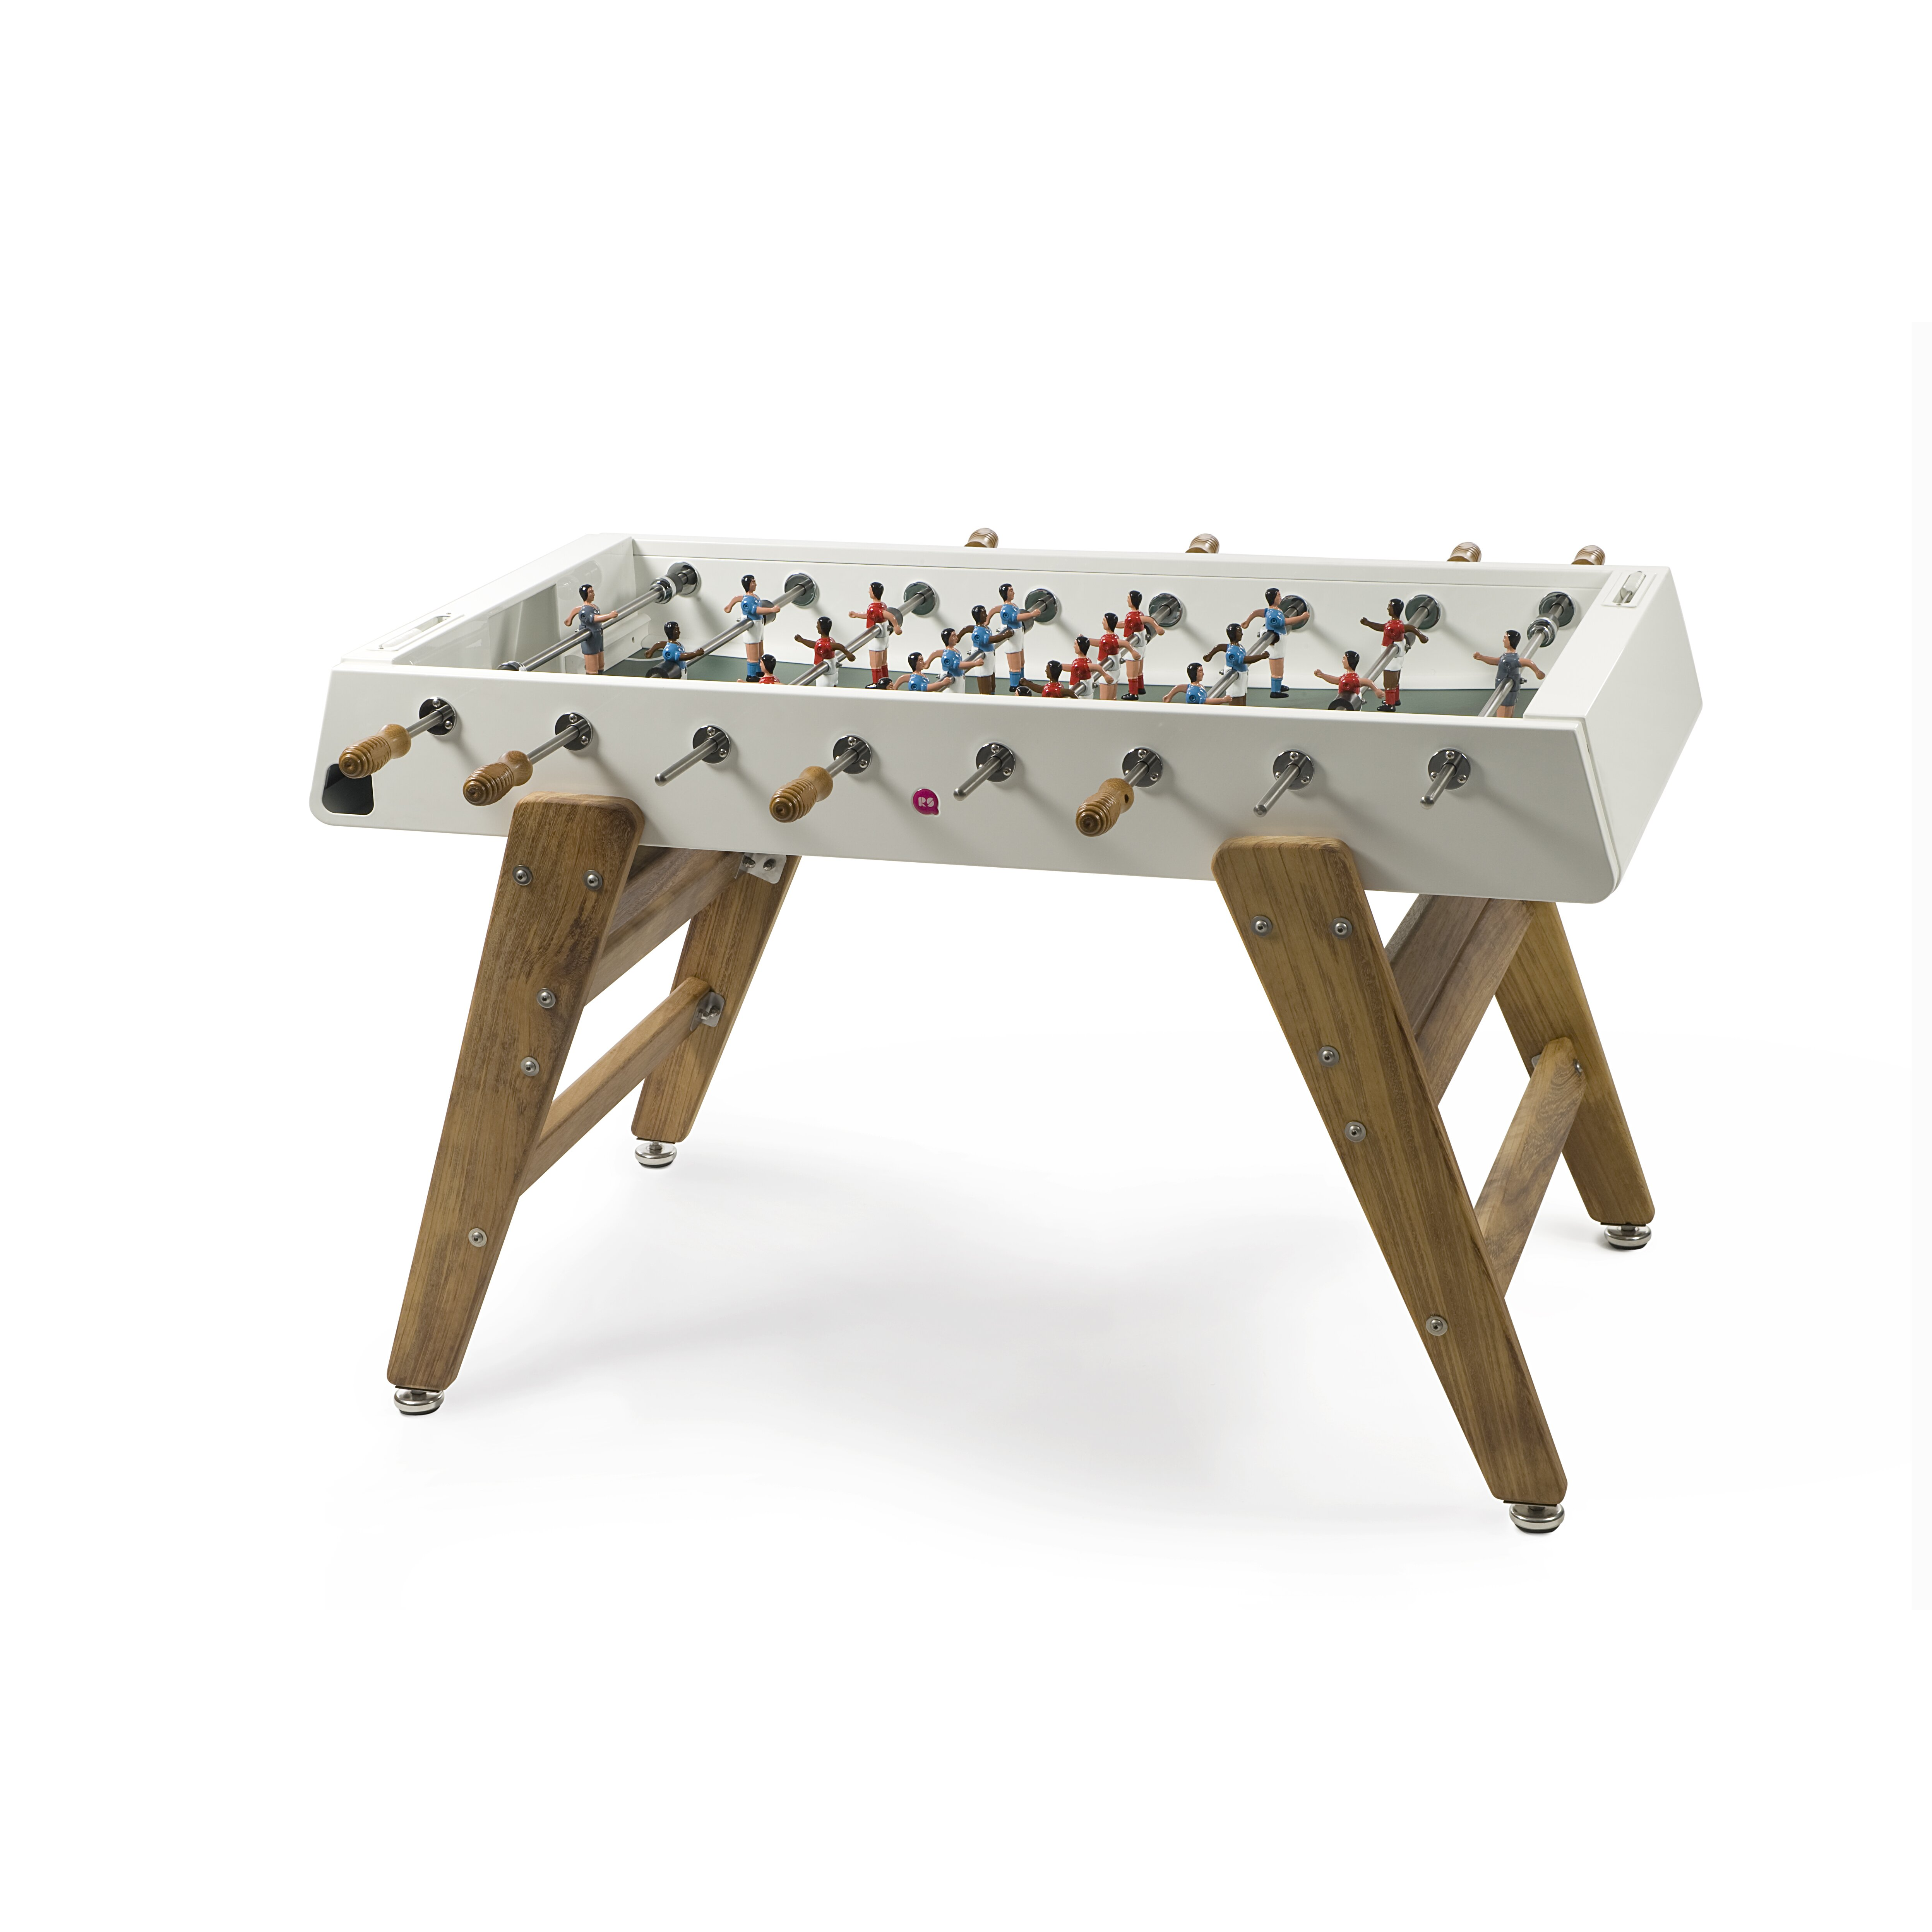 Rs barcelona rs 3 wood foosball table reviews wayfair for Runescape exp table 1 99